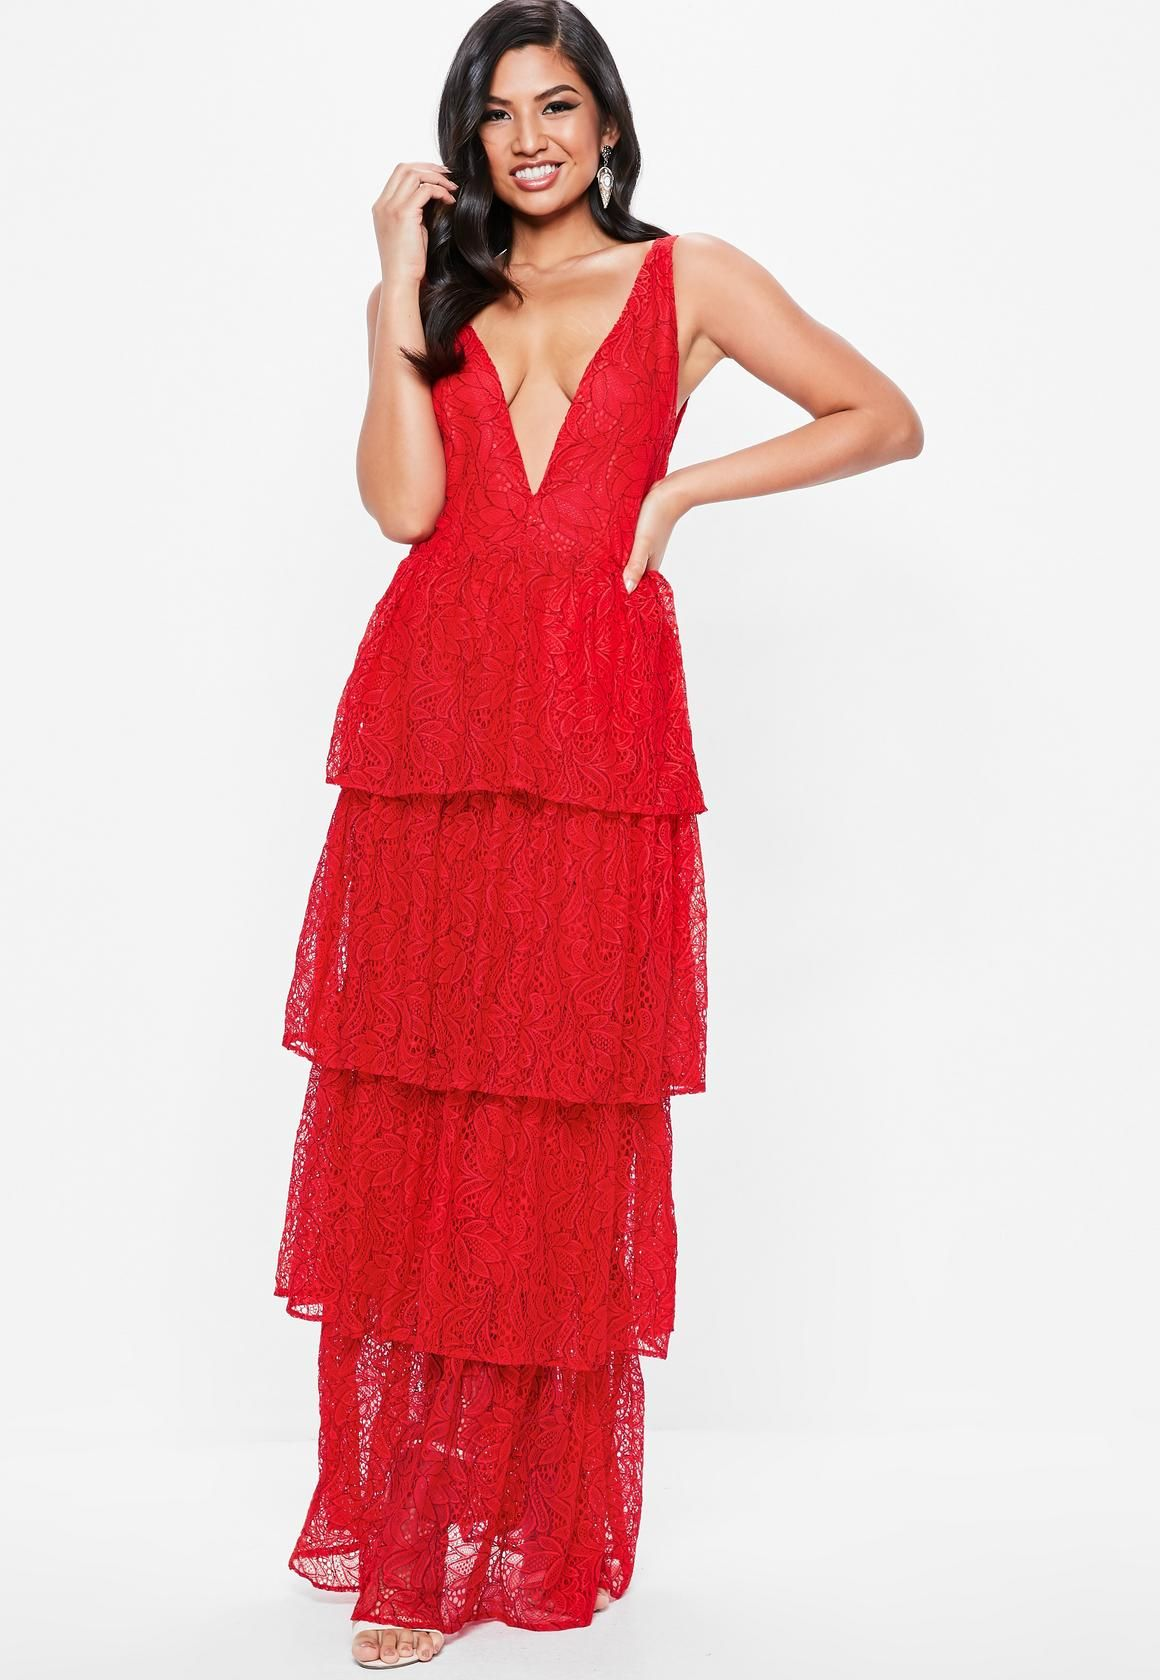 303760e93f84 Missguided - Red Lace Tiered Frill Maxi Dress | Wearing | Dresses ...